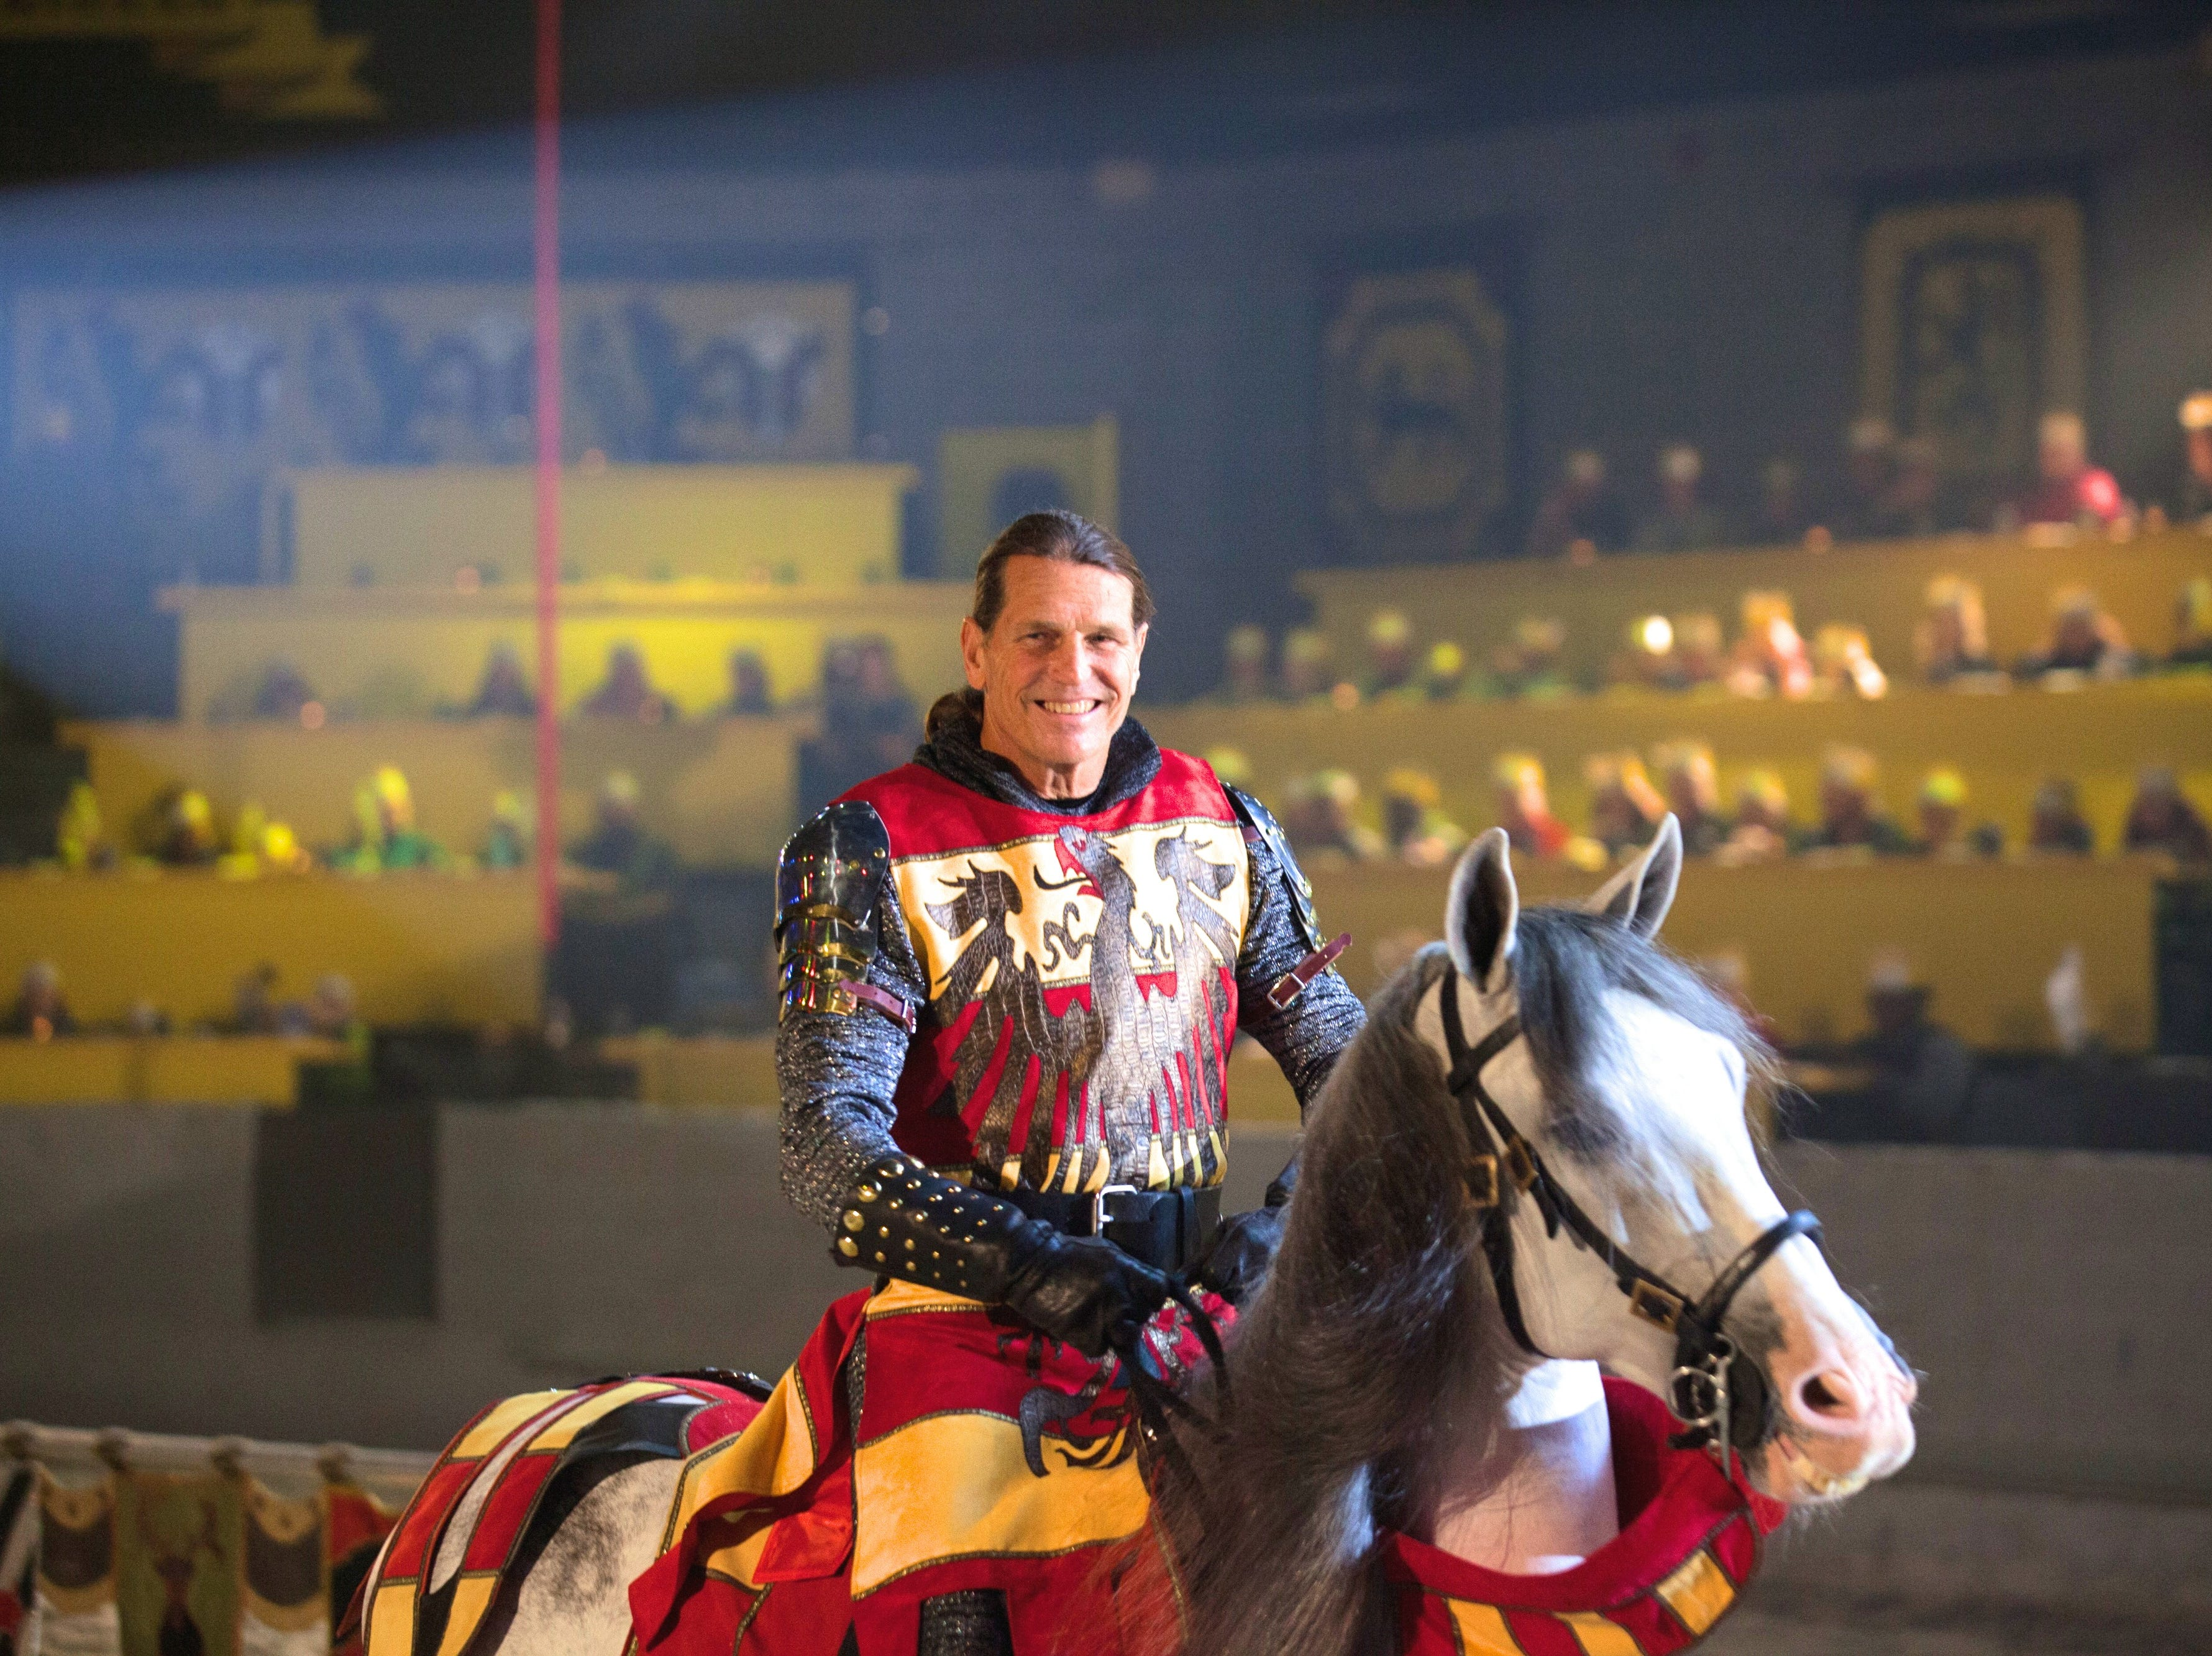 A knight performing at Medieval Times.